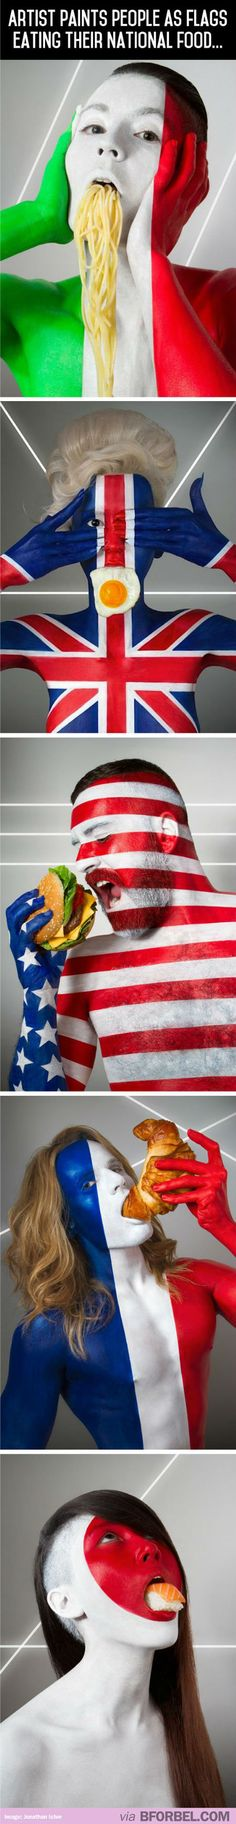 Artist Paints People As Flags With Their National Food…